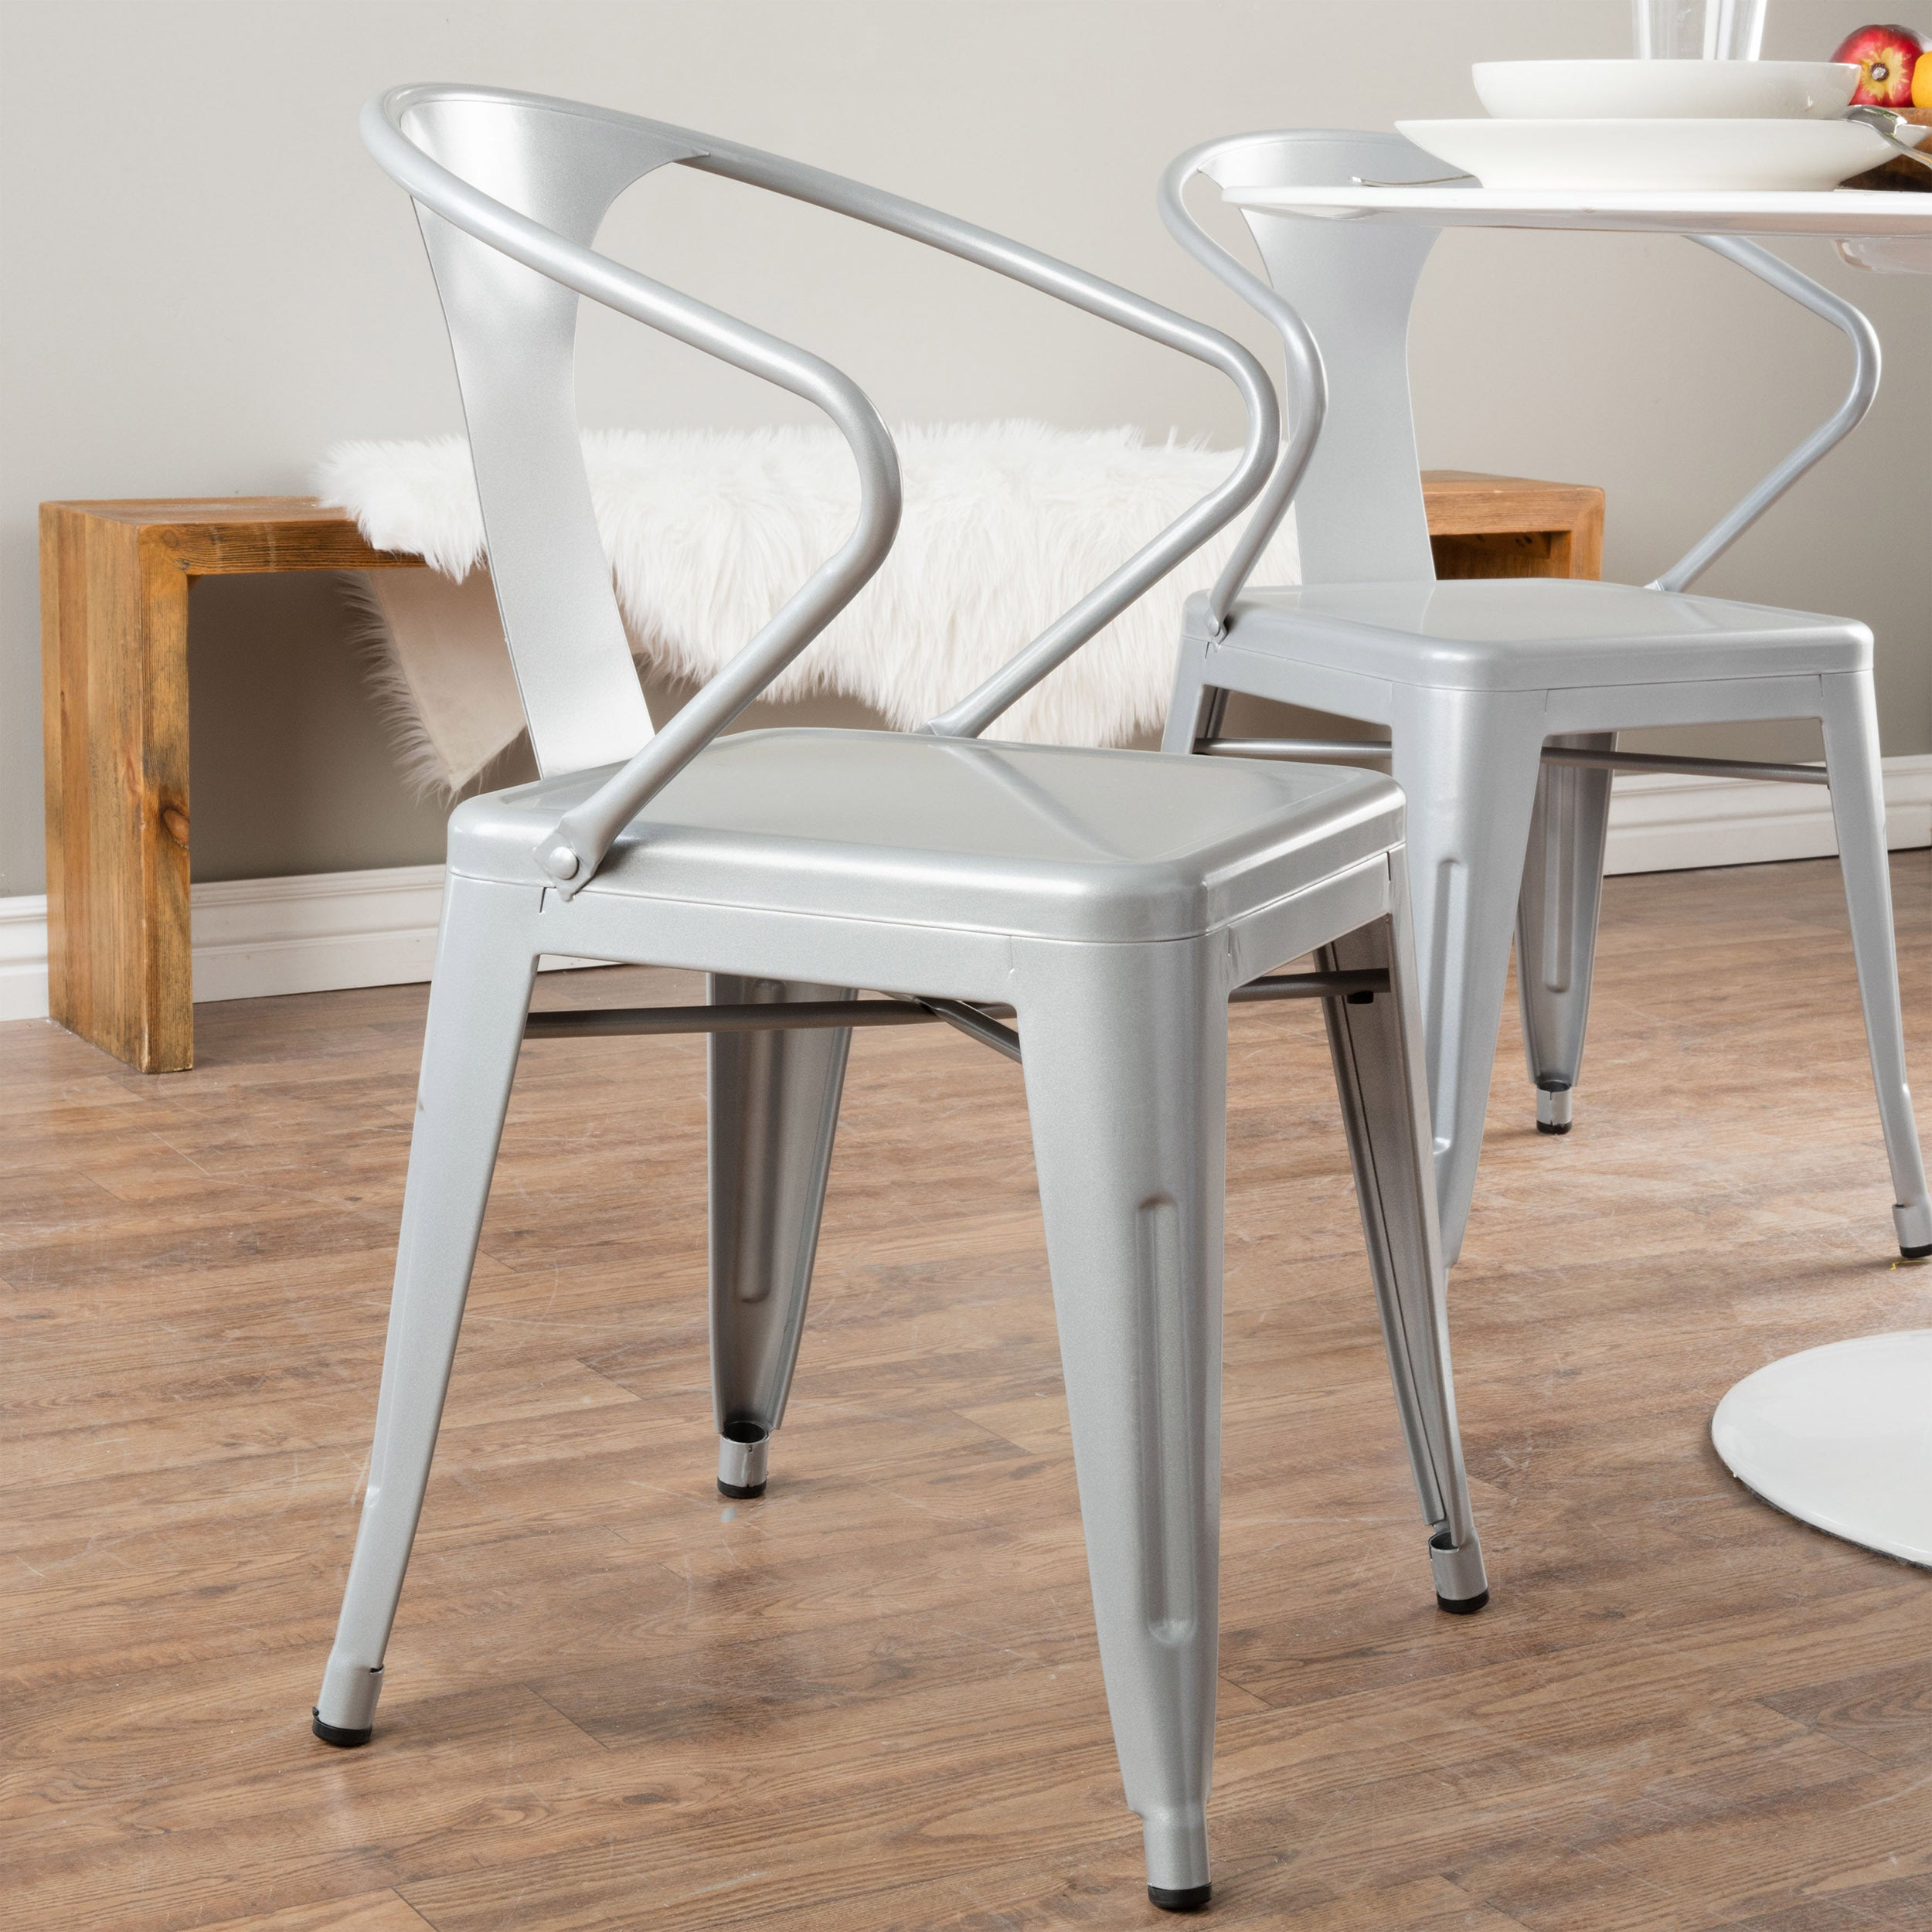 Awesome Carbon Loft Silver Tabouret Stacking Chairs (Set Of 4)   Free Shipping  Today   Overstock.com   12950045